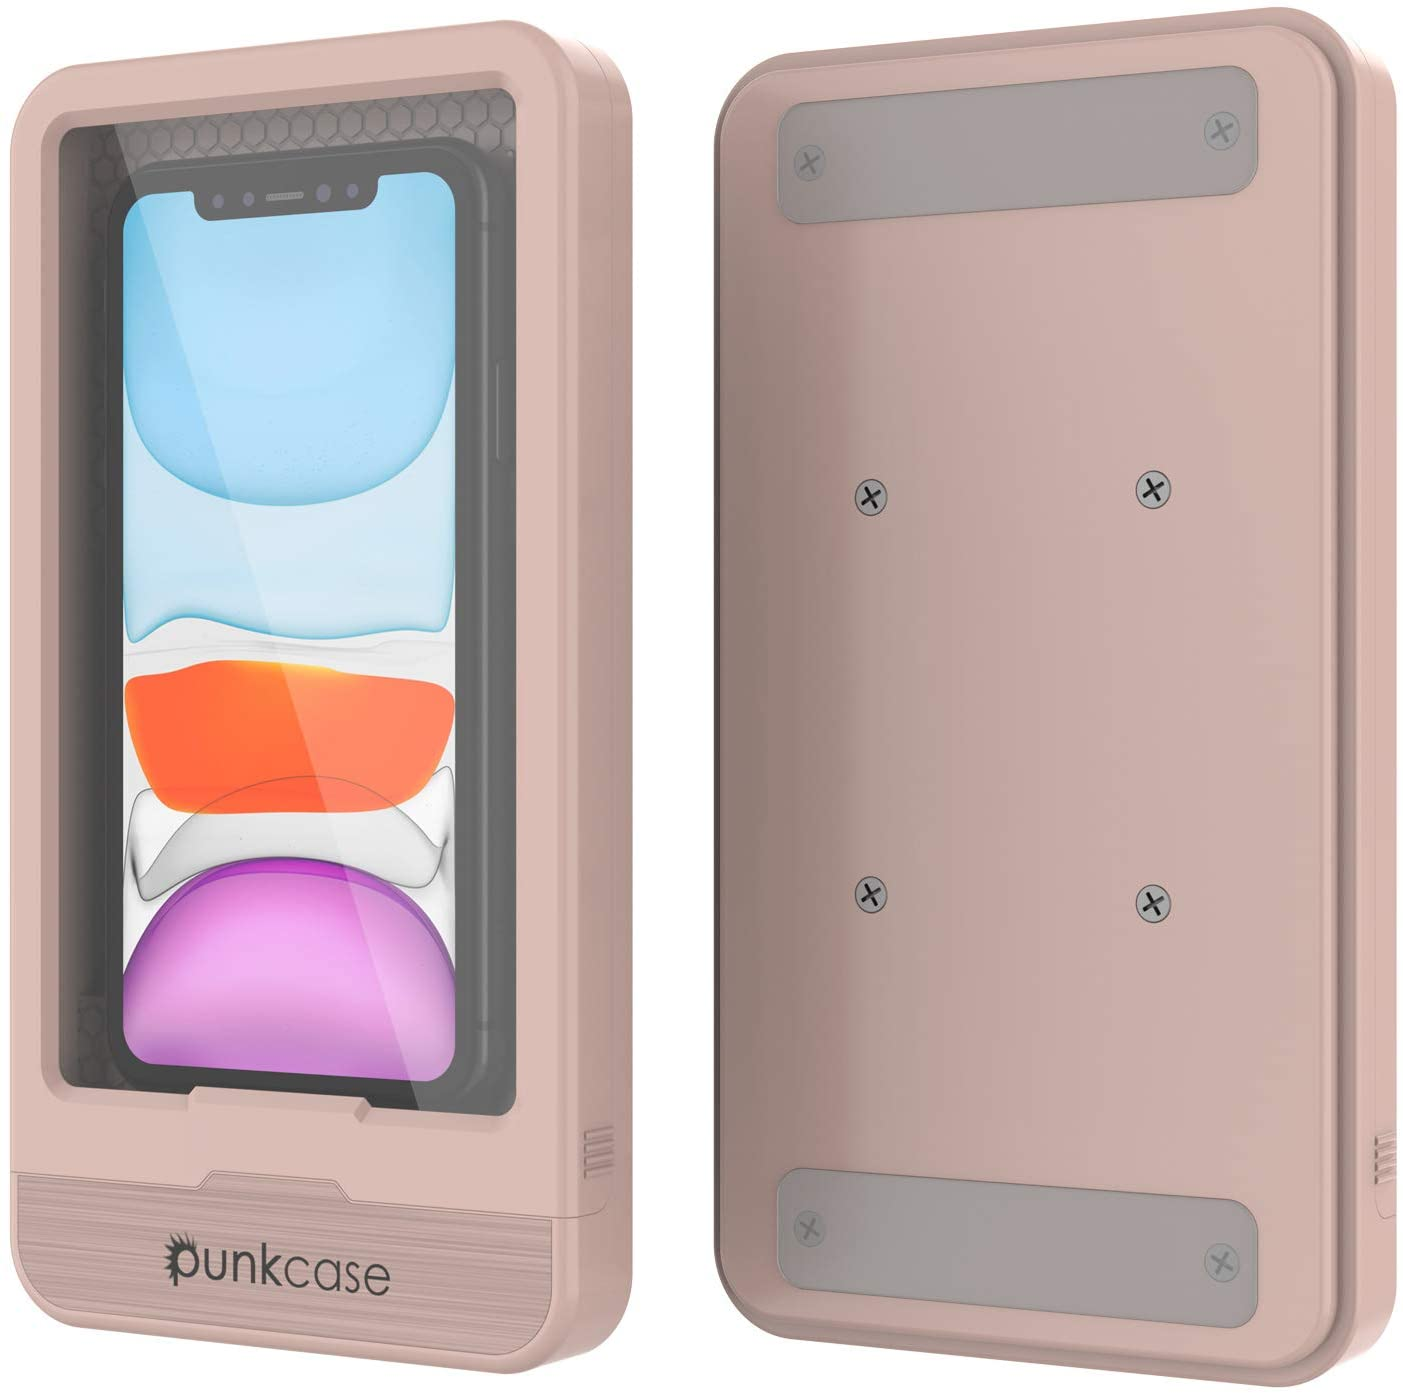 PunkCase Bathroom Phone Holder | Universal Waterproof Shower Case W/Full Touch Screen Control [Pink]